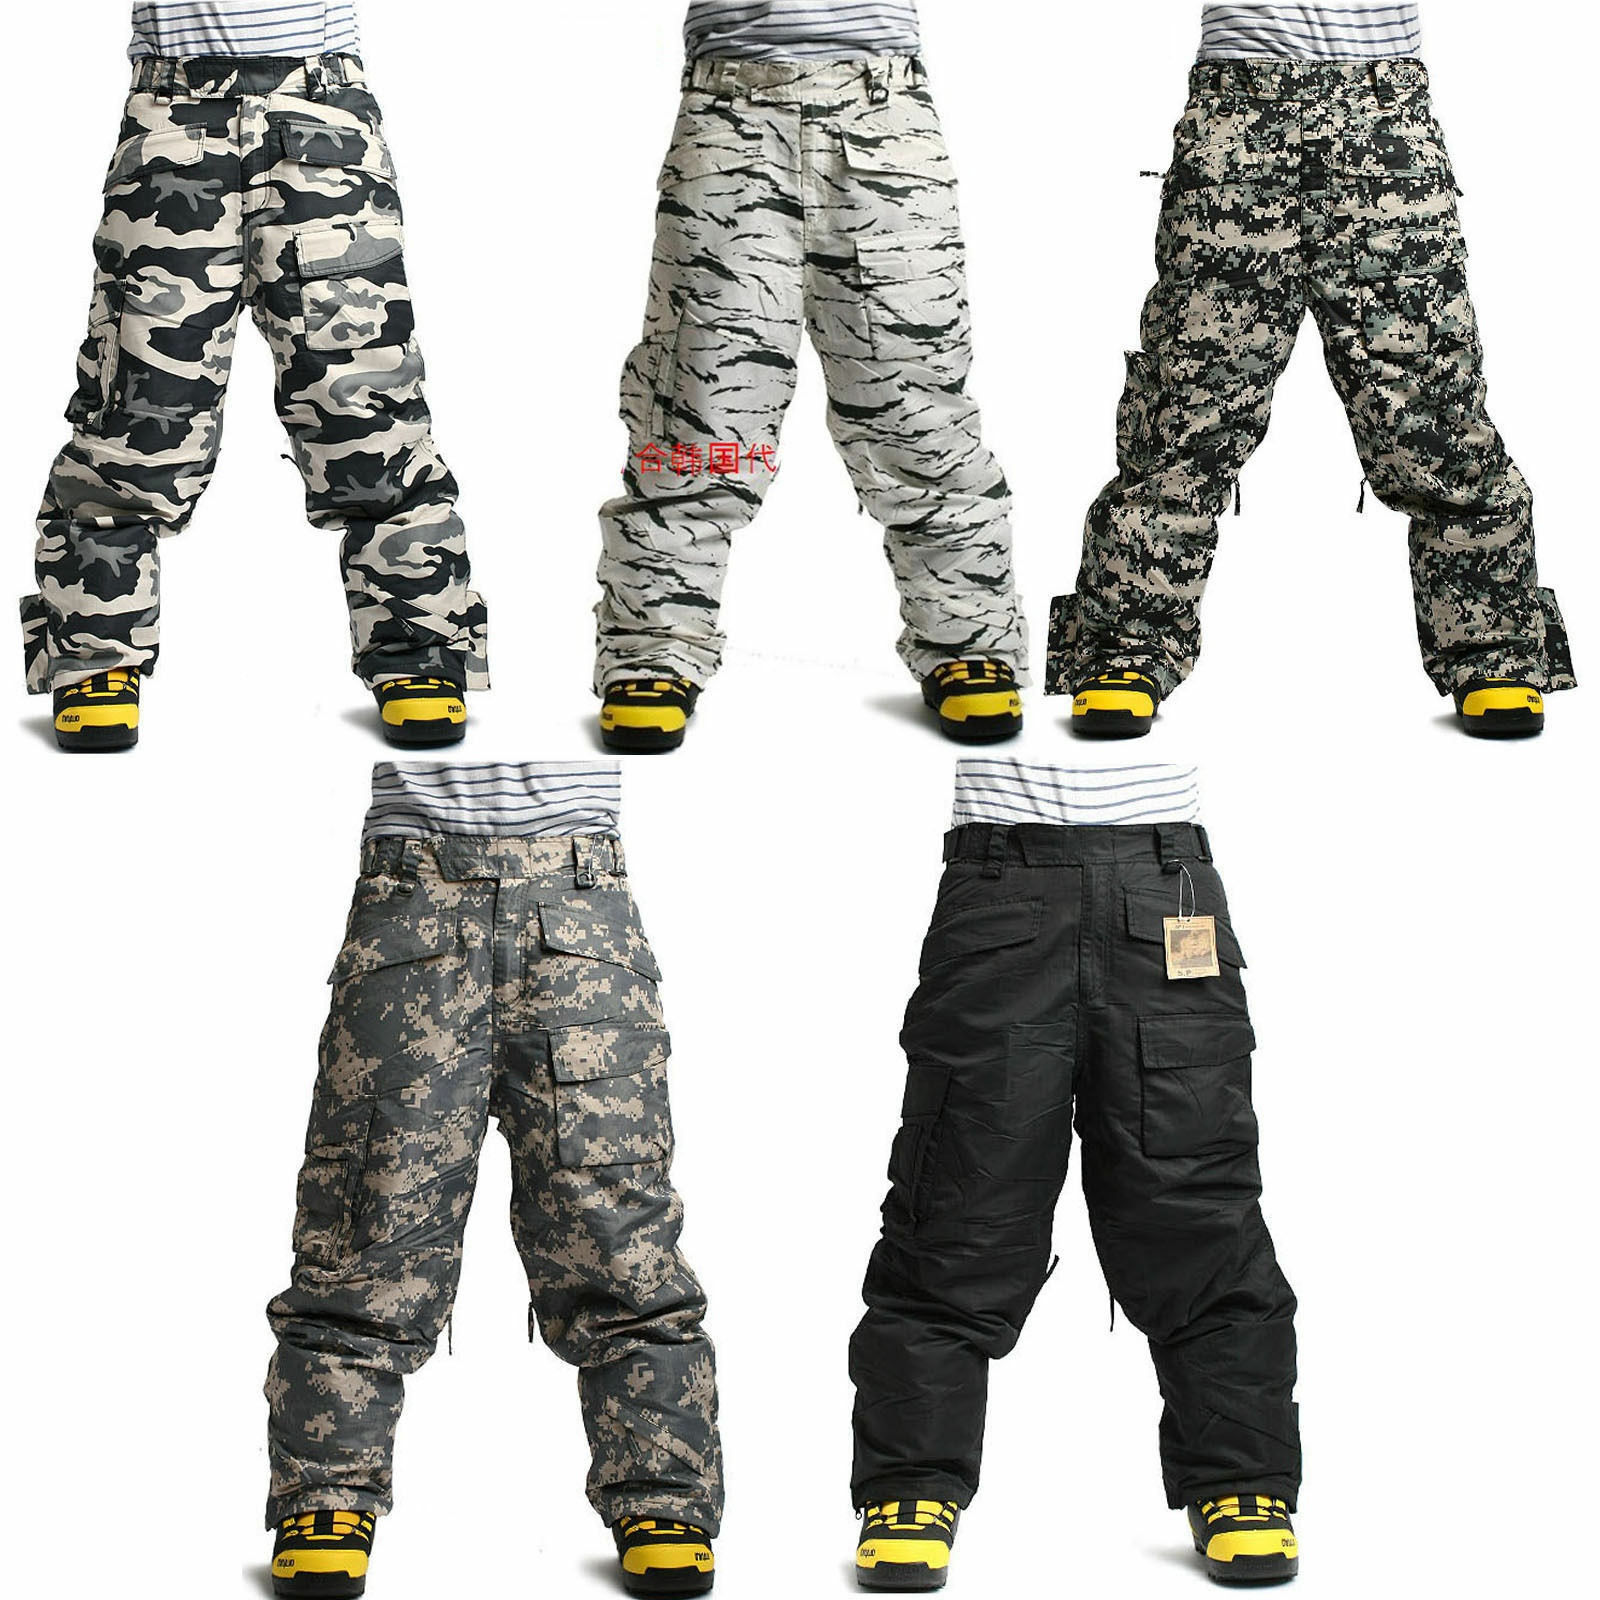 Southplay Winter Premium Waterproof  Military Ski-Snowboard Pants Collection